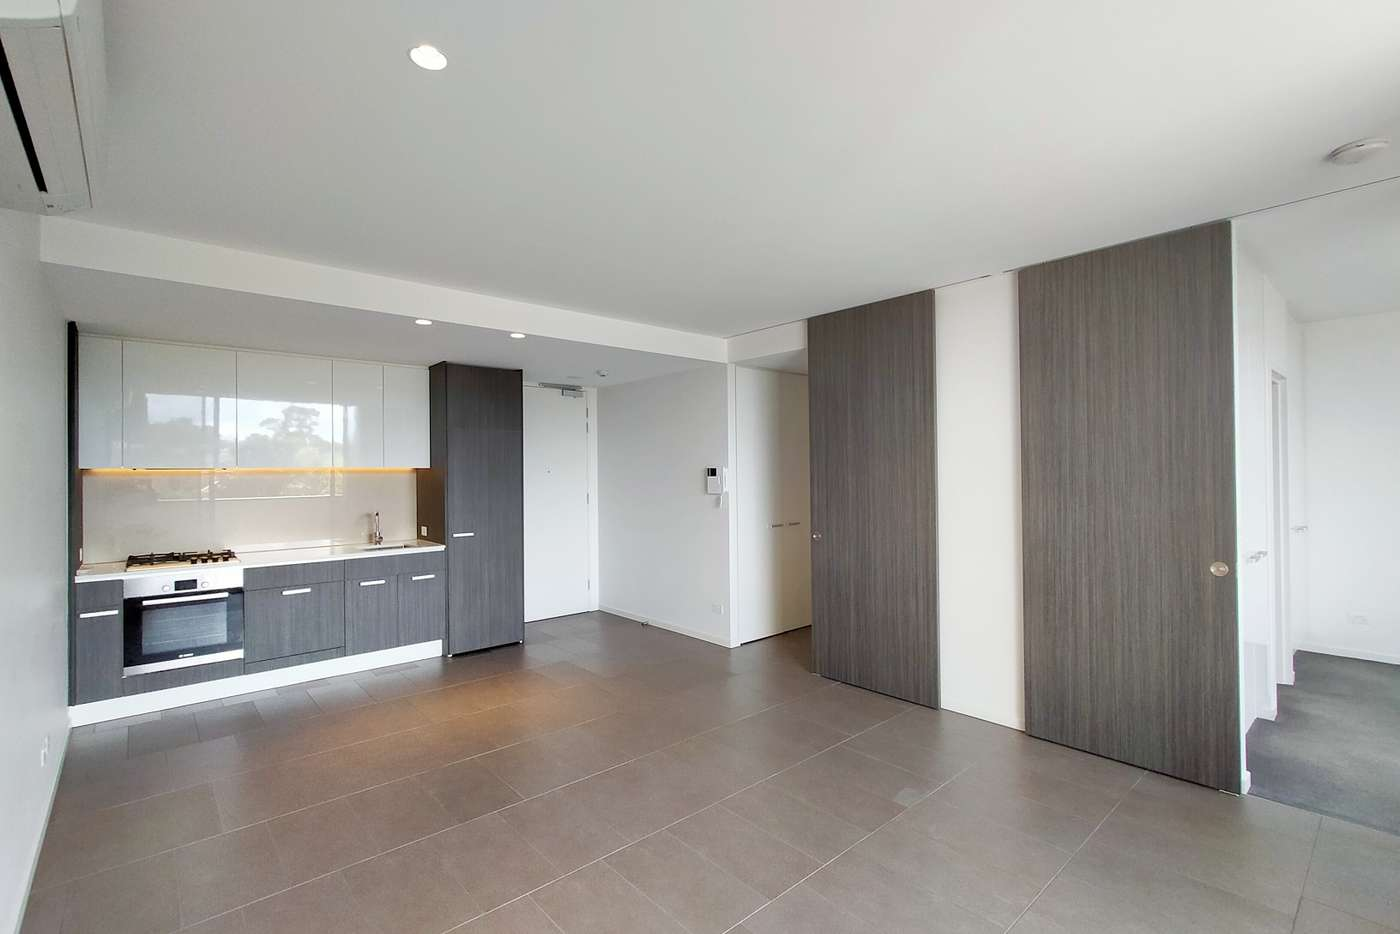 Main view of Homely apartment listing, 602B/3 Broughton St, Parramatta NSW 2150